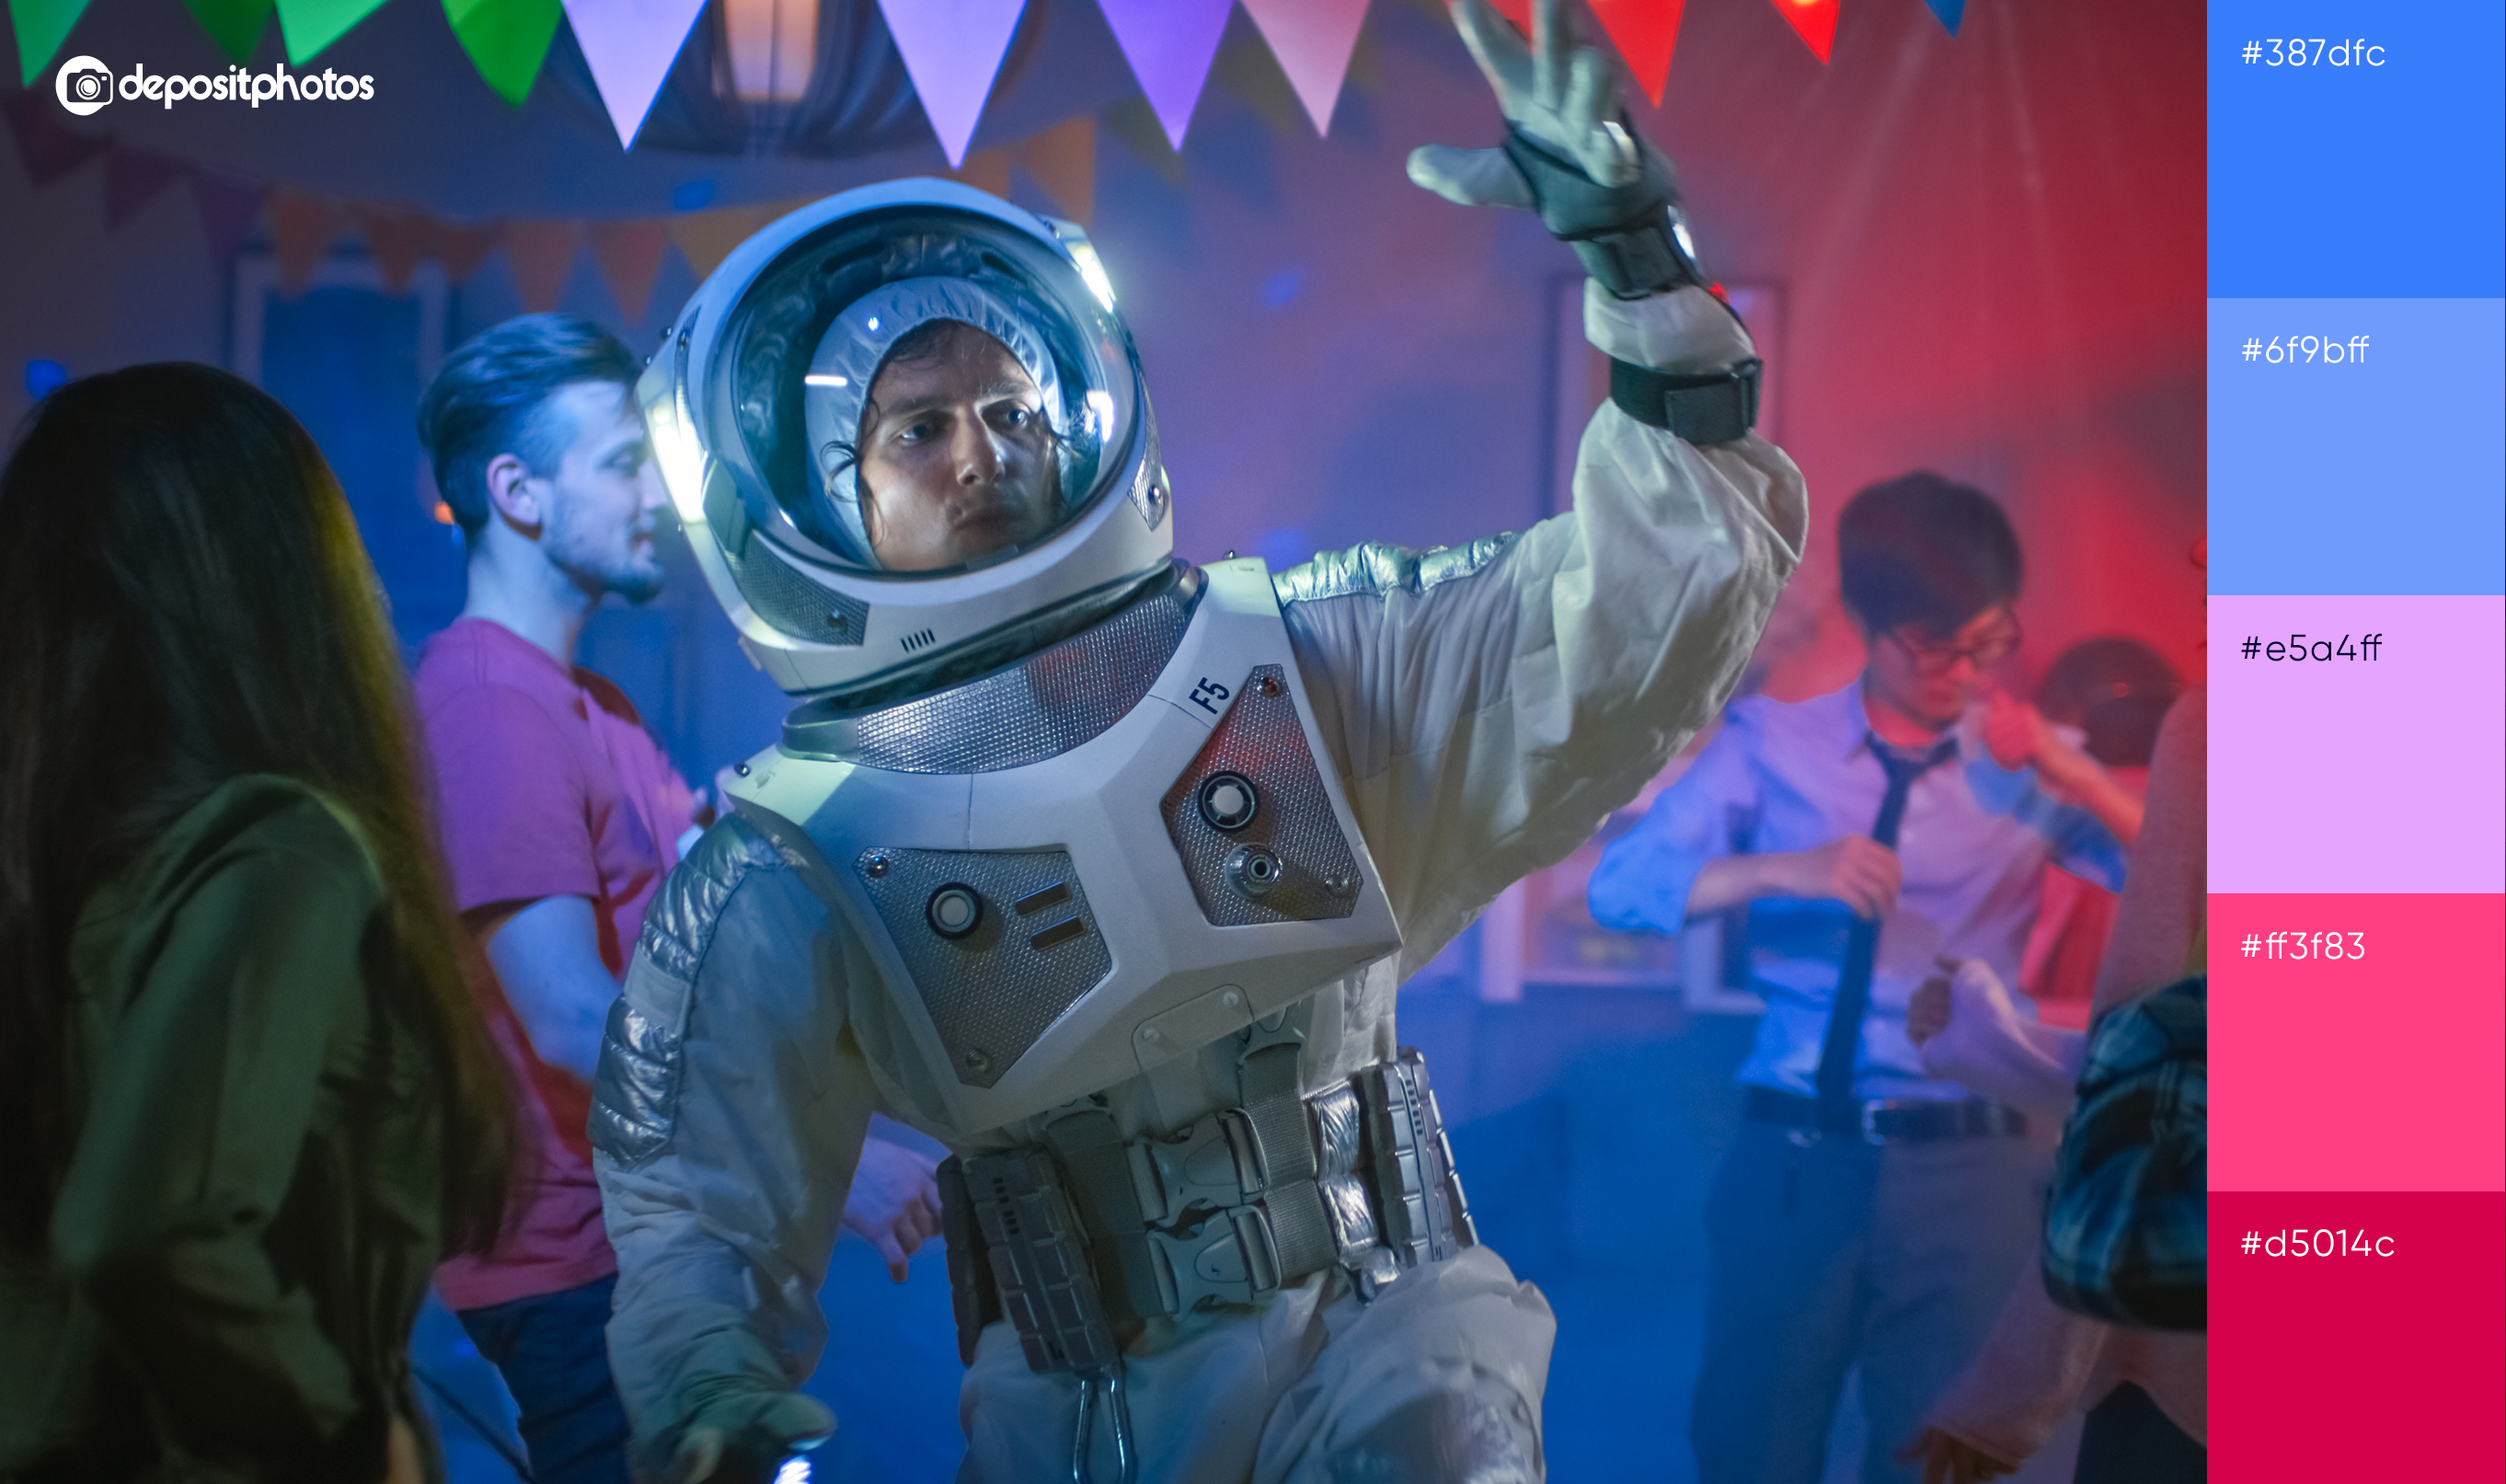 man partying in spacesuit